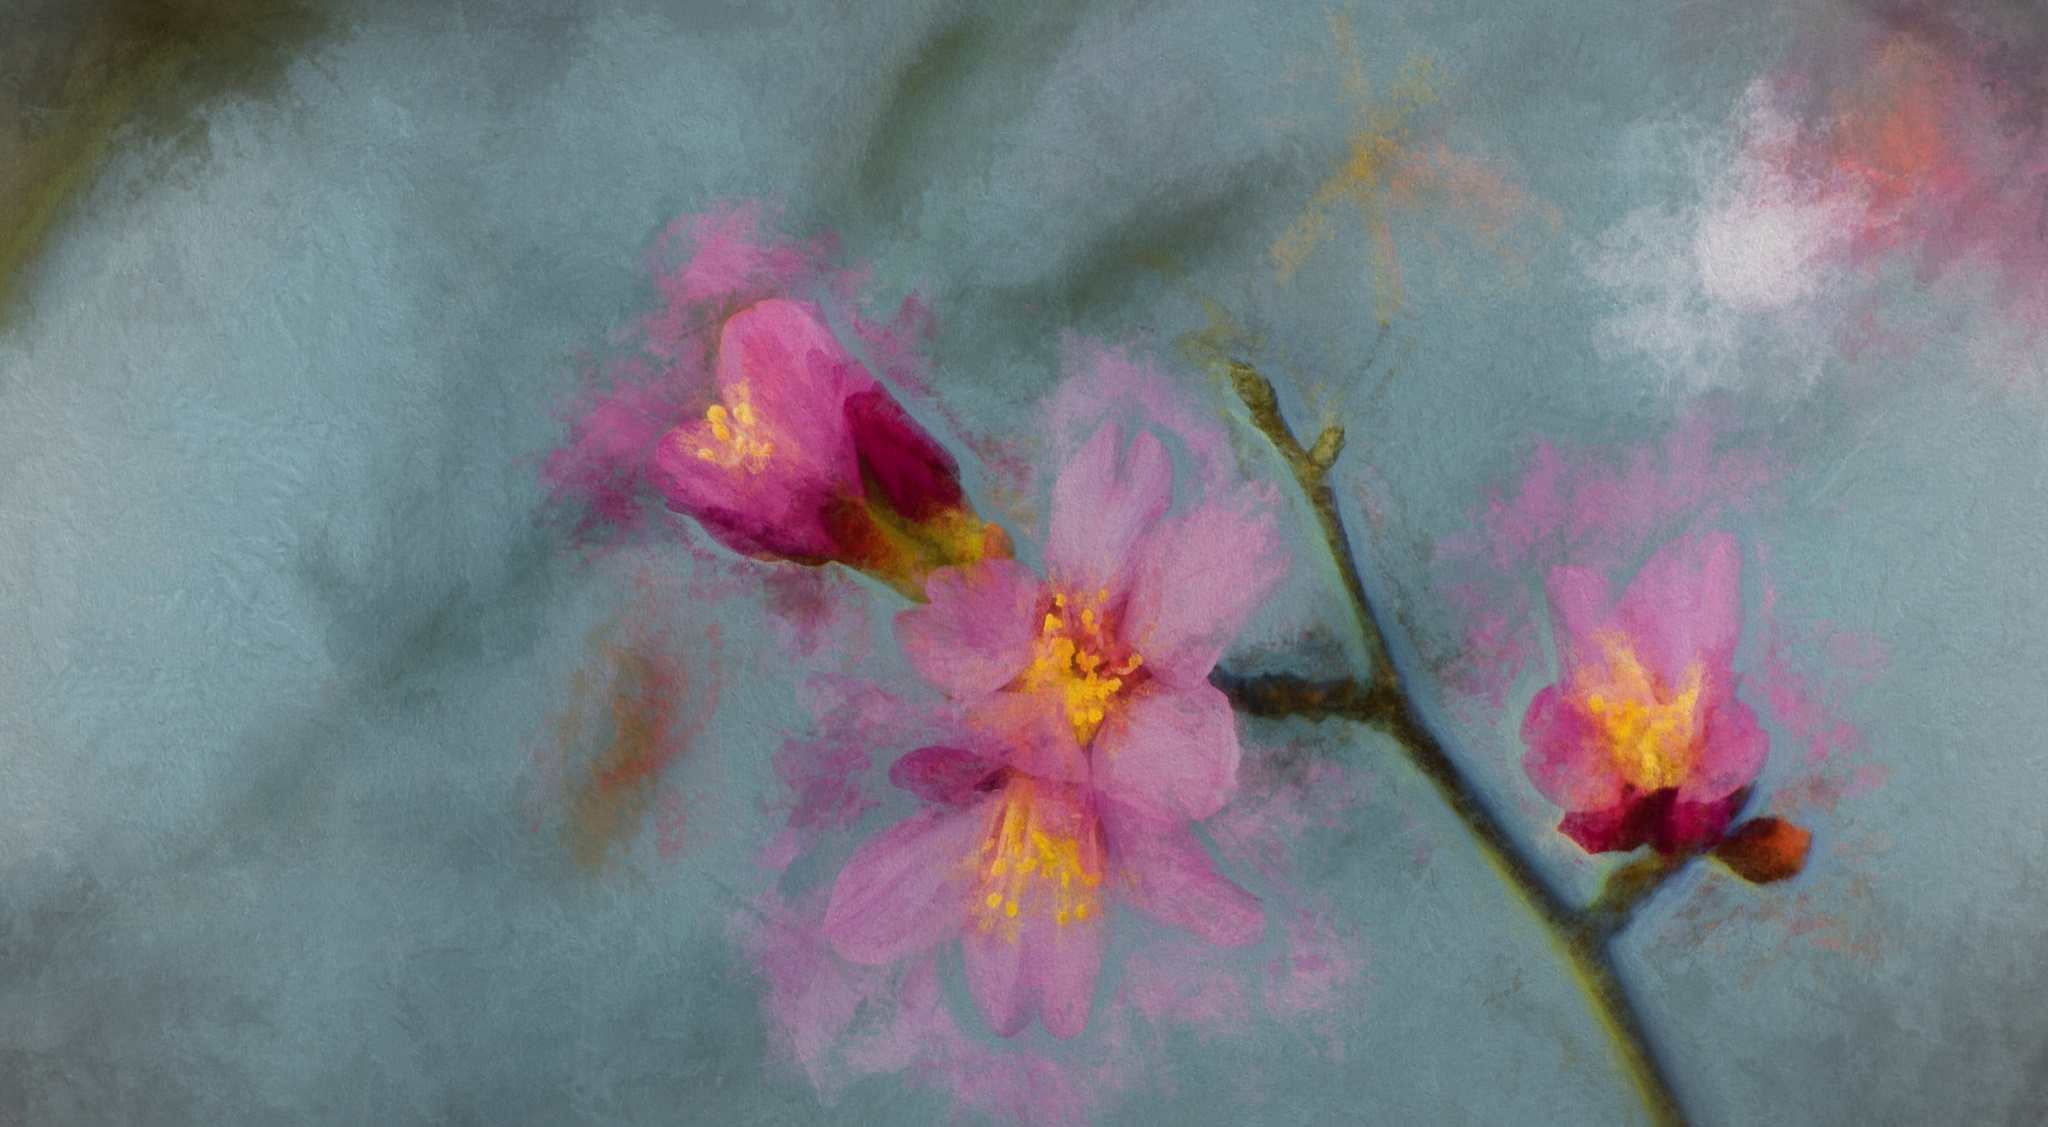 Cherry Blossom 6 by JohnEllingson